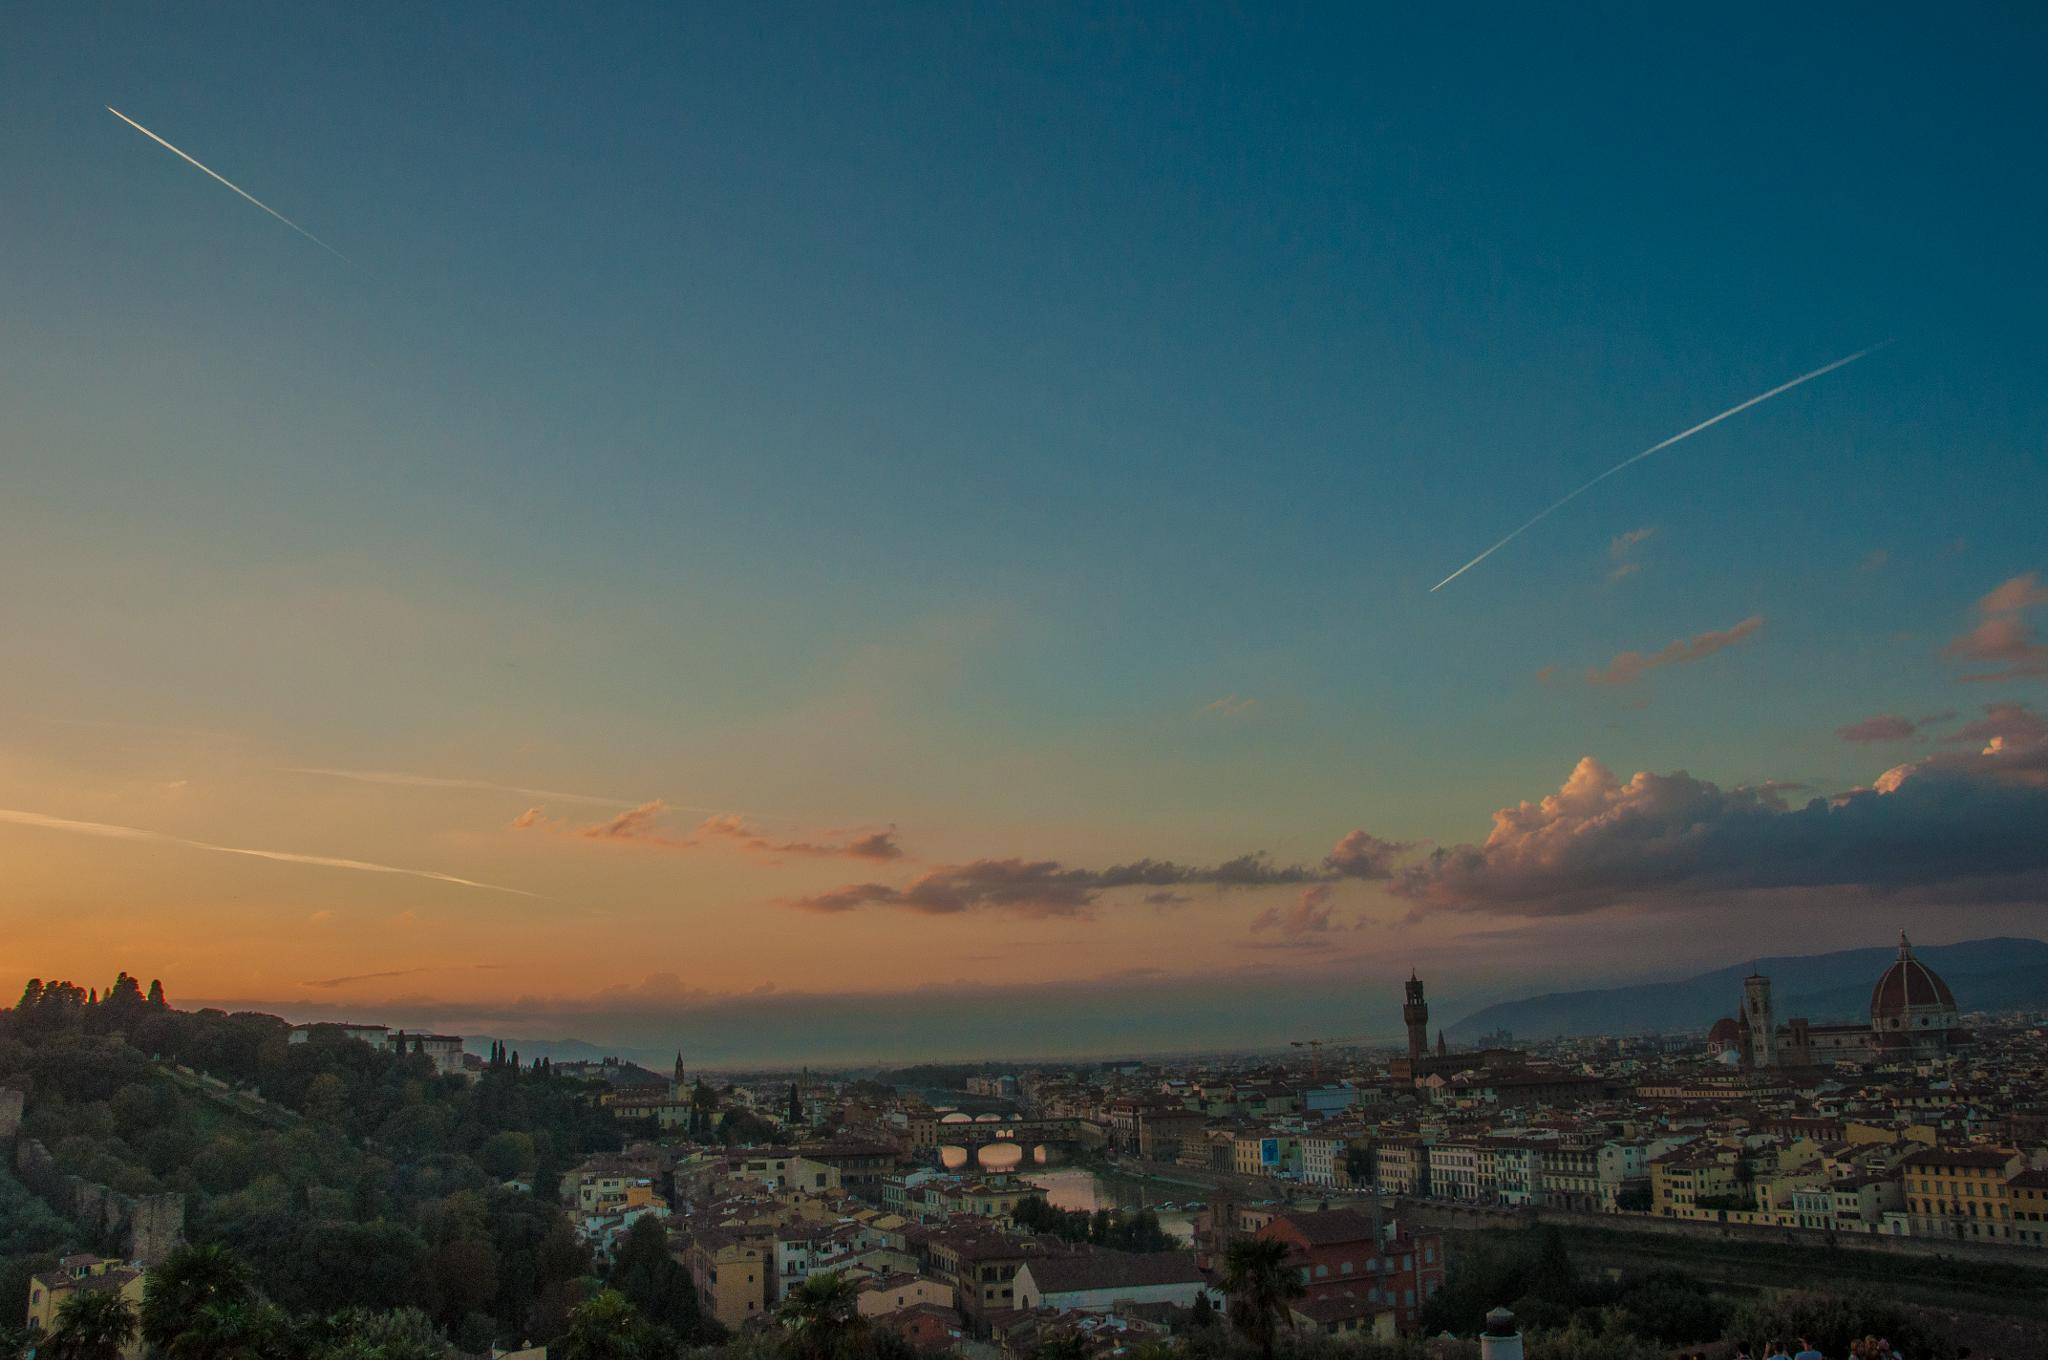 Two planes over Florence by Dimitris Gkoutzamanis